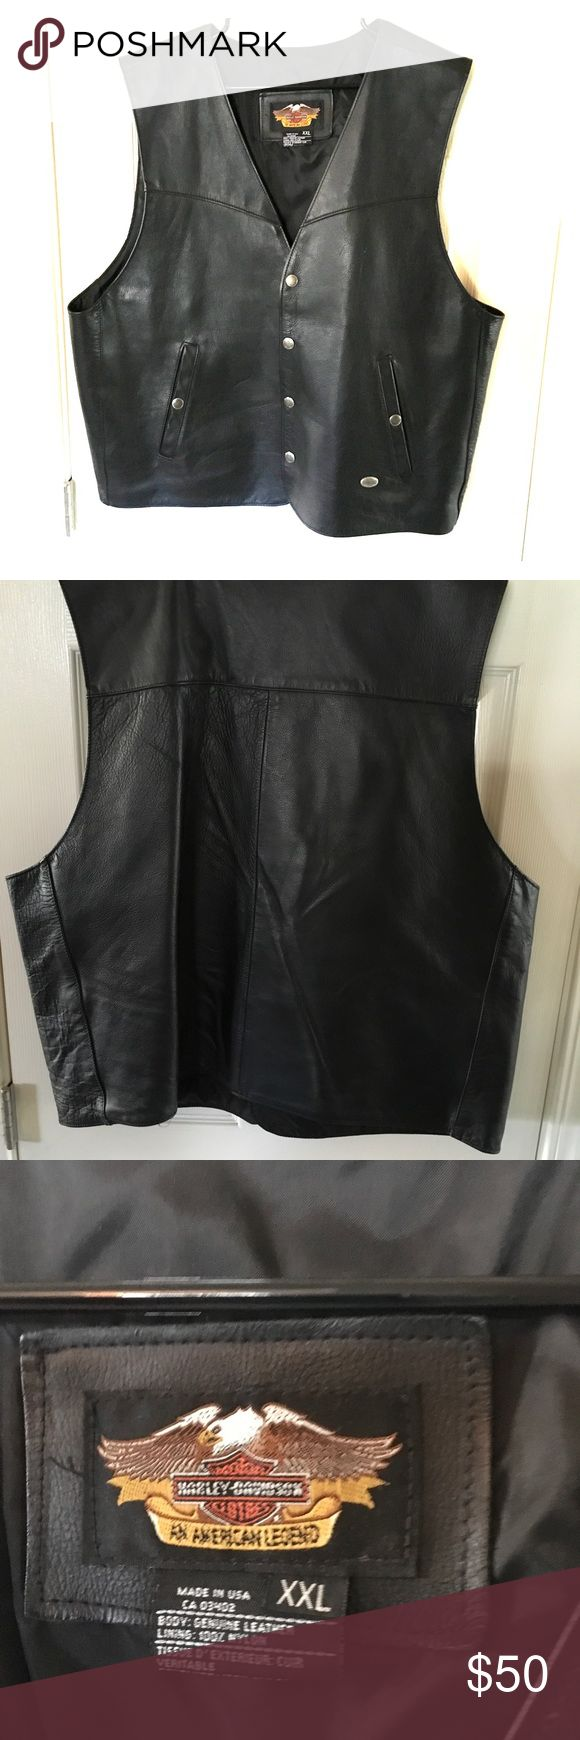 "Harley Davidson  Vest & Leather King Chaps Like new 2XL black leather Harley Davidson motorcycle vest & 4XL black Leather King chaps. (4XL = 48"" waist). No spots, wear or tear on either item. Would consider selling separately for $30 each item. Great buy for motorcycle weather coming up! Harley Davidson & Leather King Other"